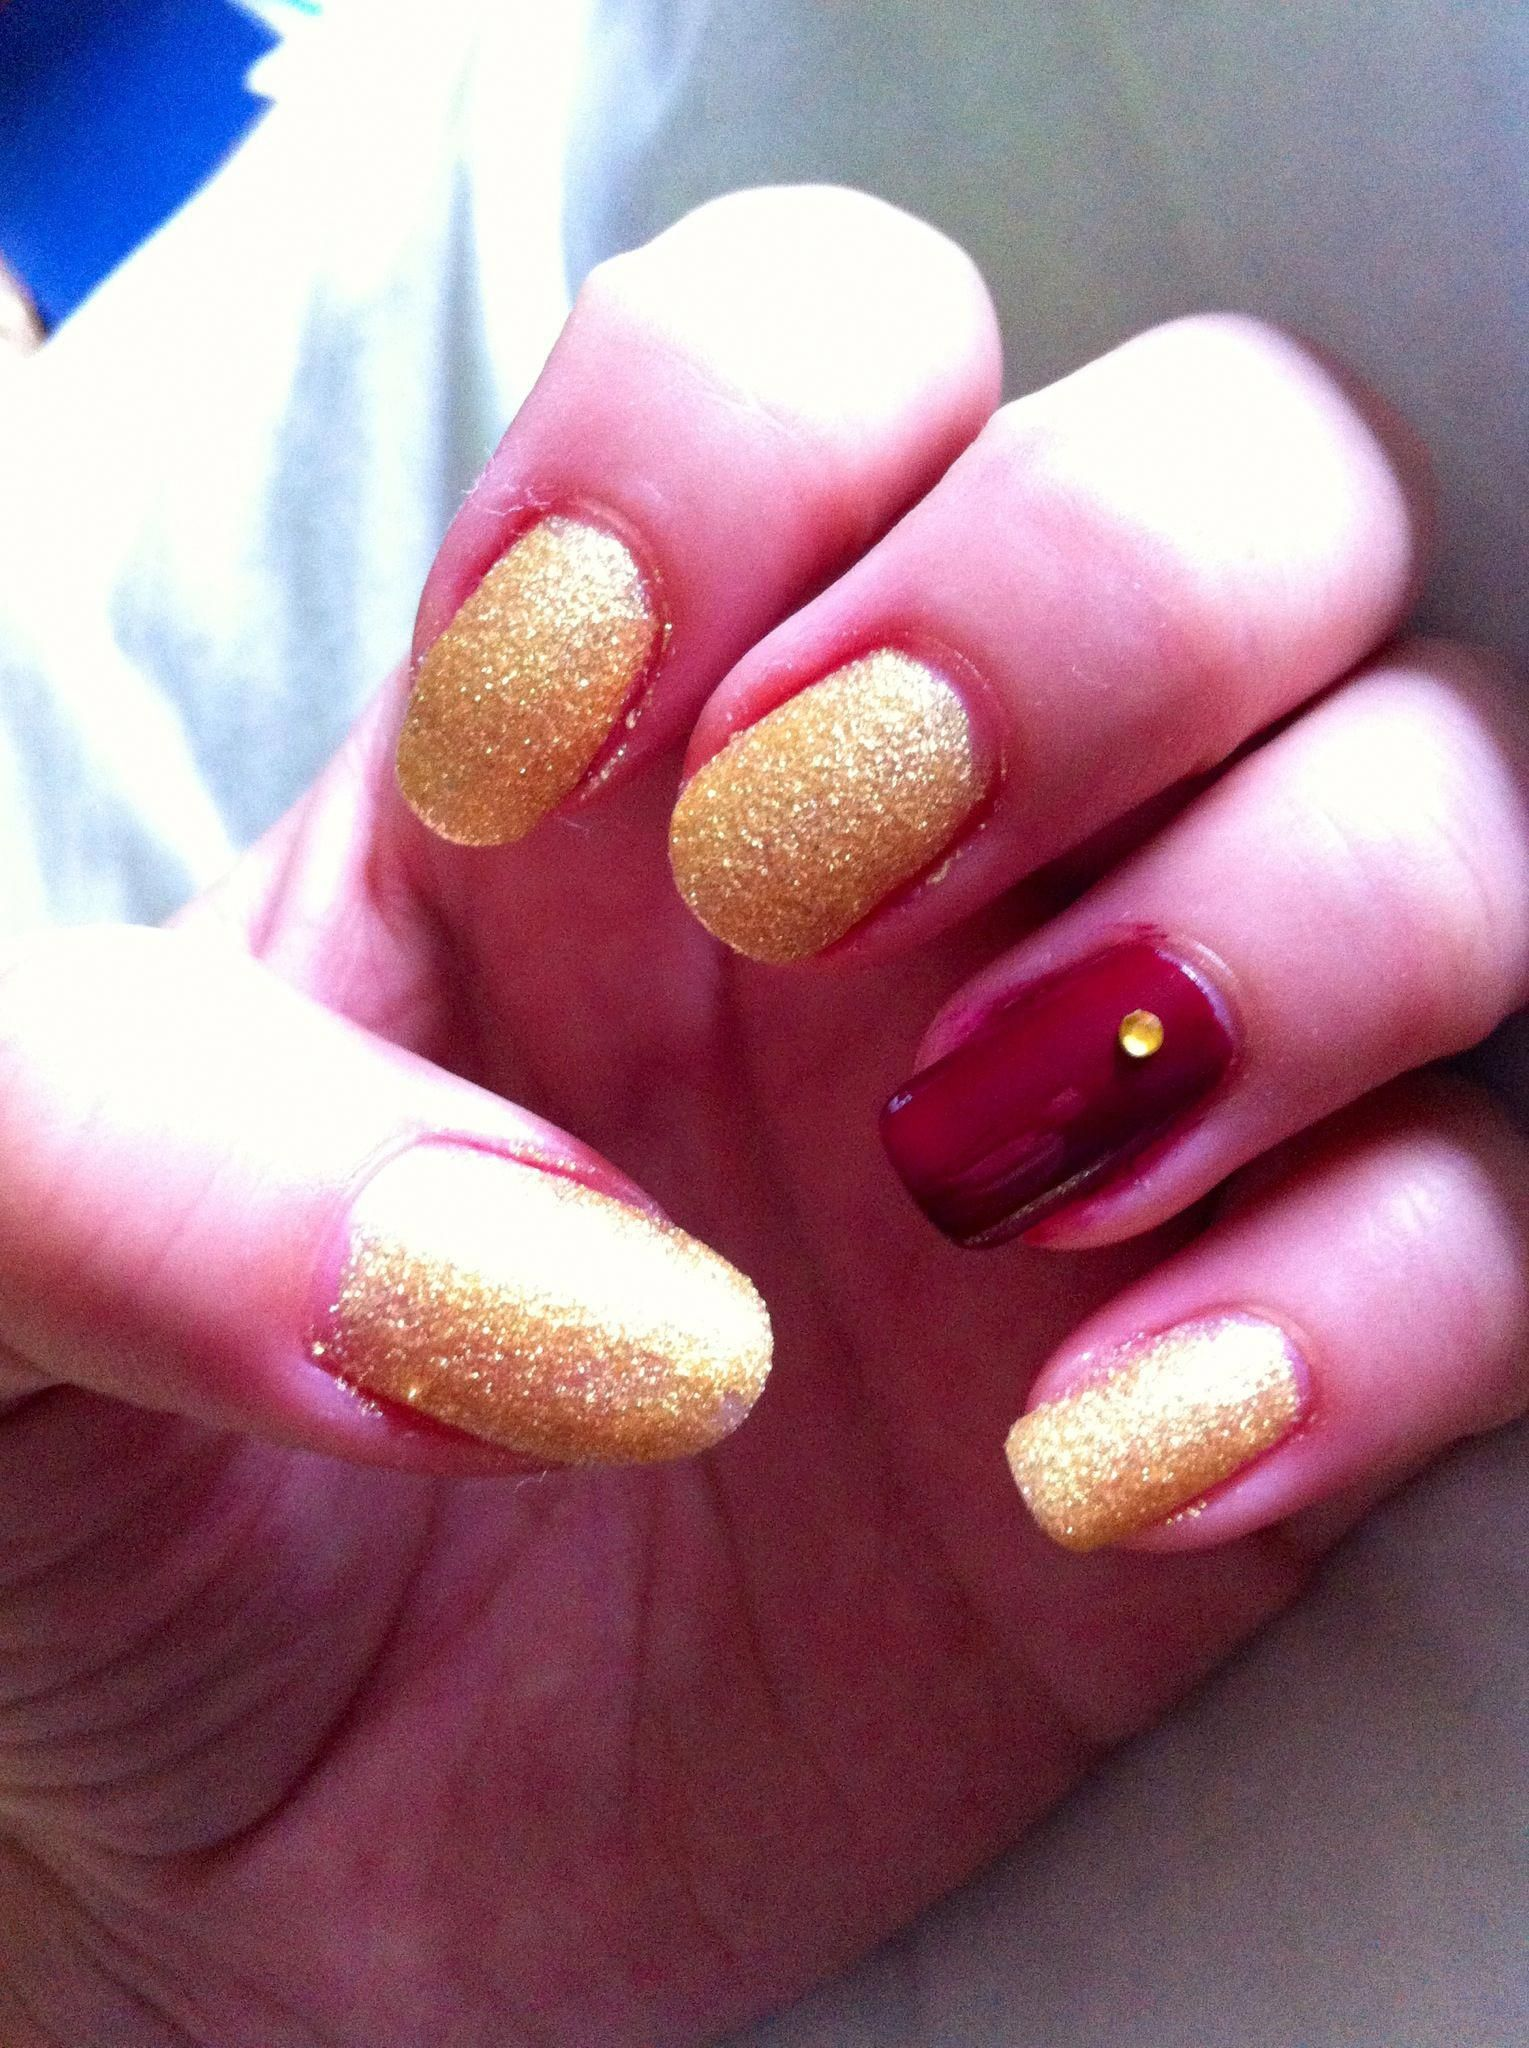 Hochzeitsnägel Apricot Hp Nails Yep I M So Nerdy I Will Be Trying This Next